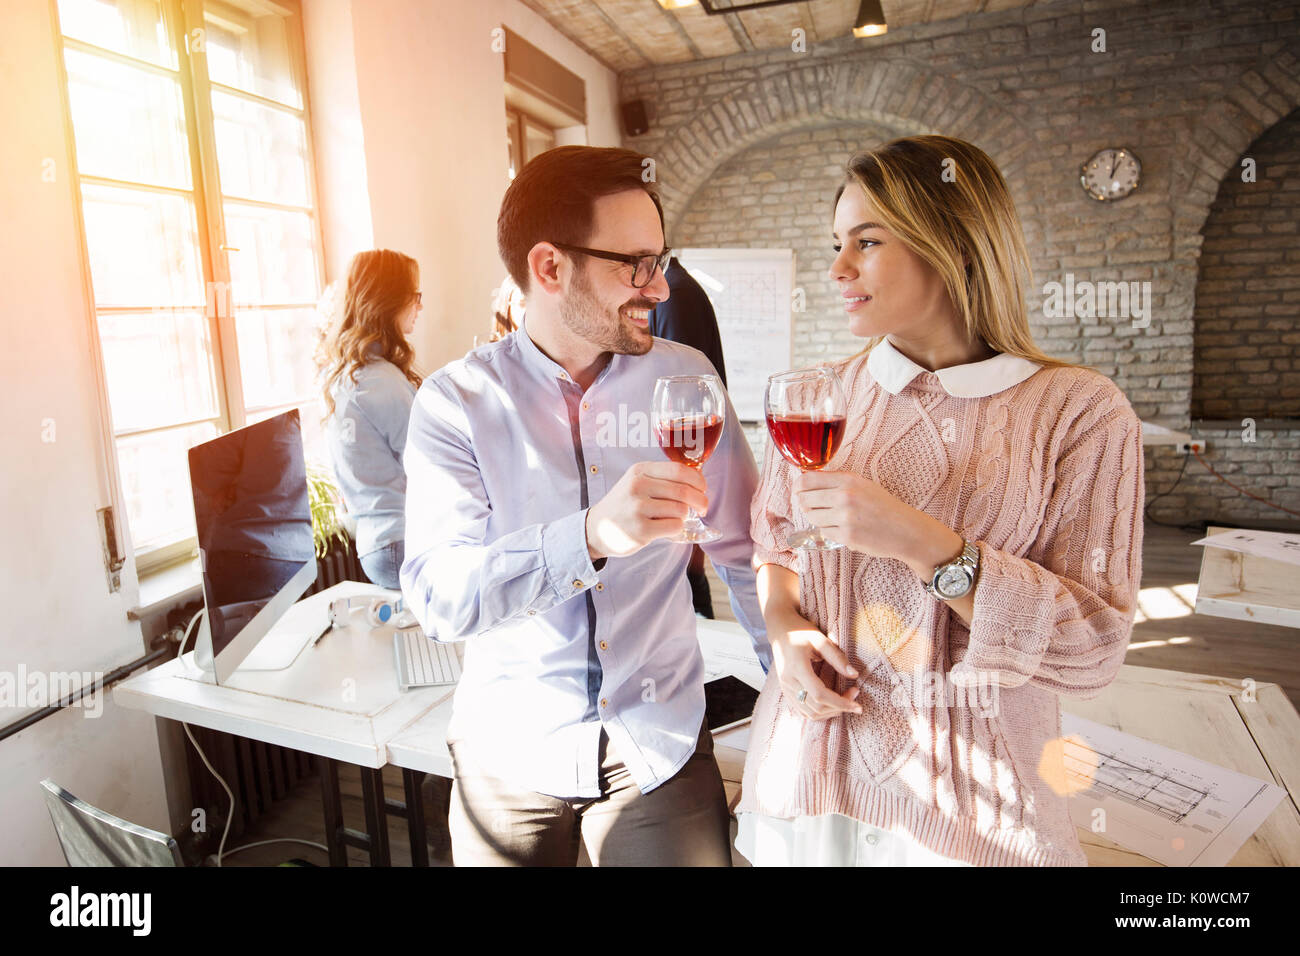 Happy young architects having break and drinking wine - Stock Image